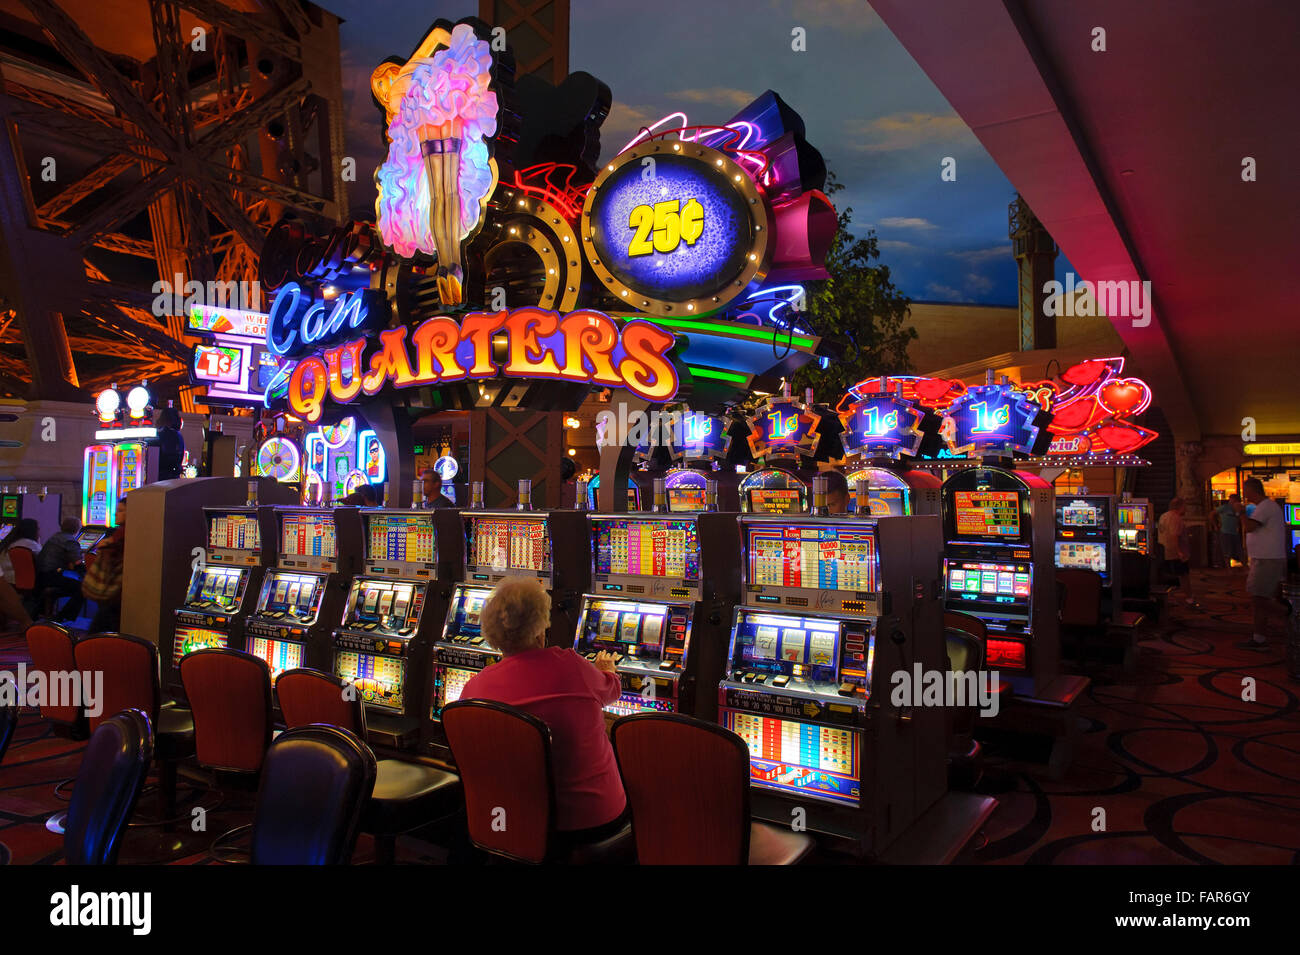 Elderly woman playing a slot machine in the casino of the Paris Hotel, Las Vegas, Nevada. - Stock Image